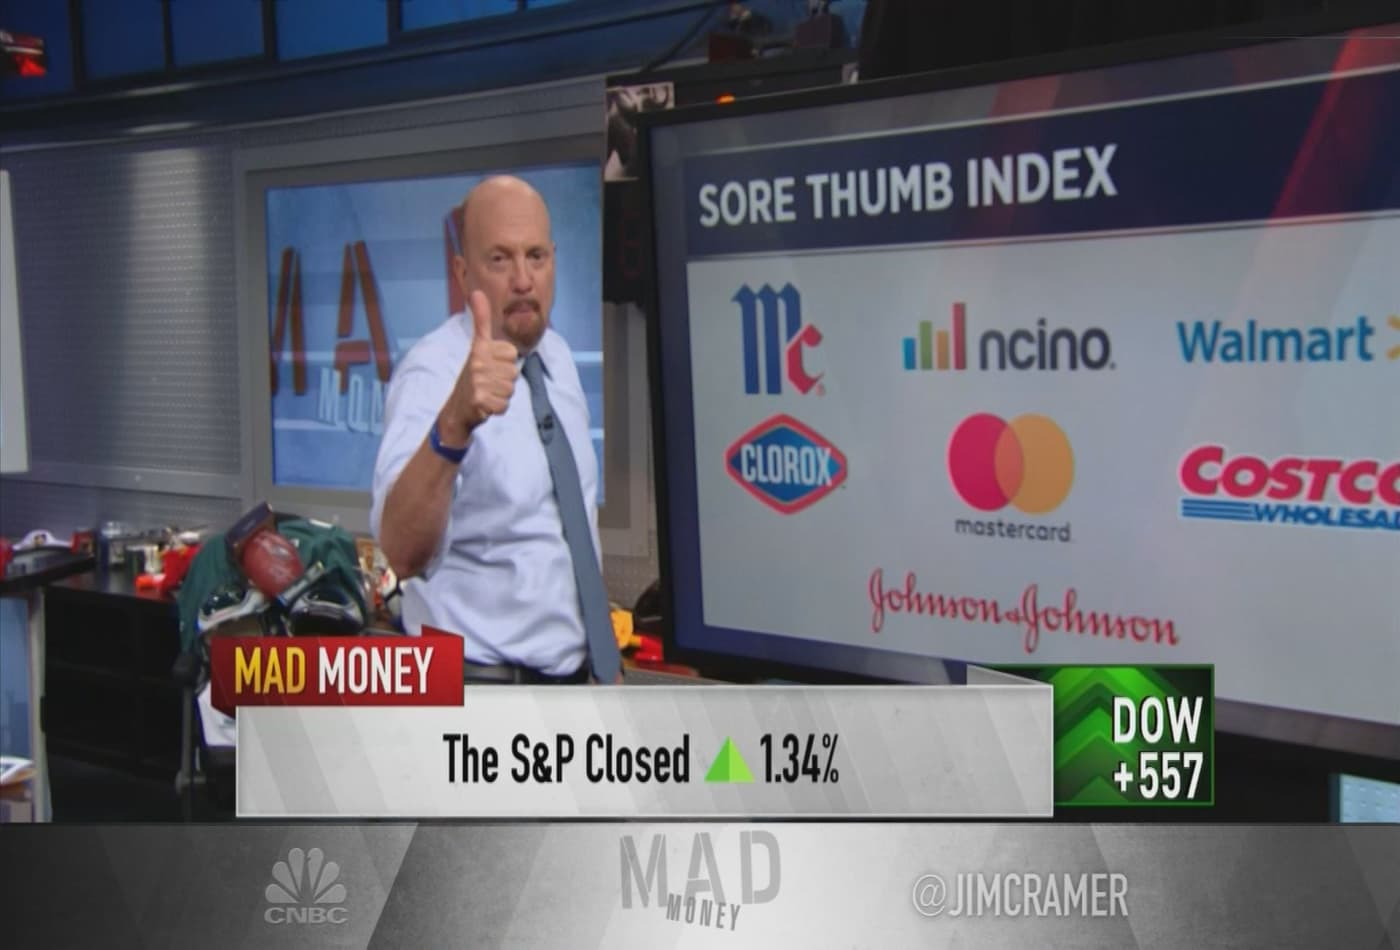 Wall Street did something 'highly unusual' in Tuesday's session, Jim Cramer says